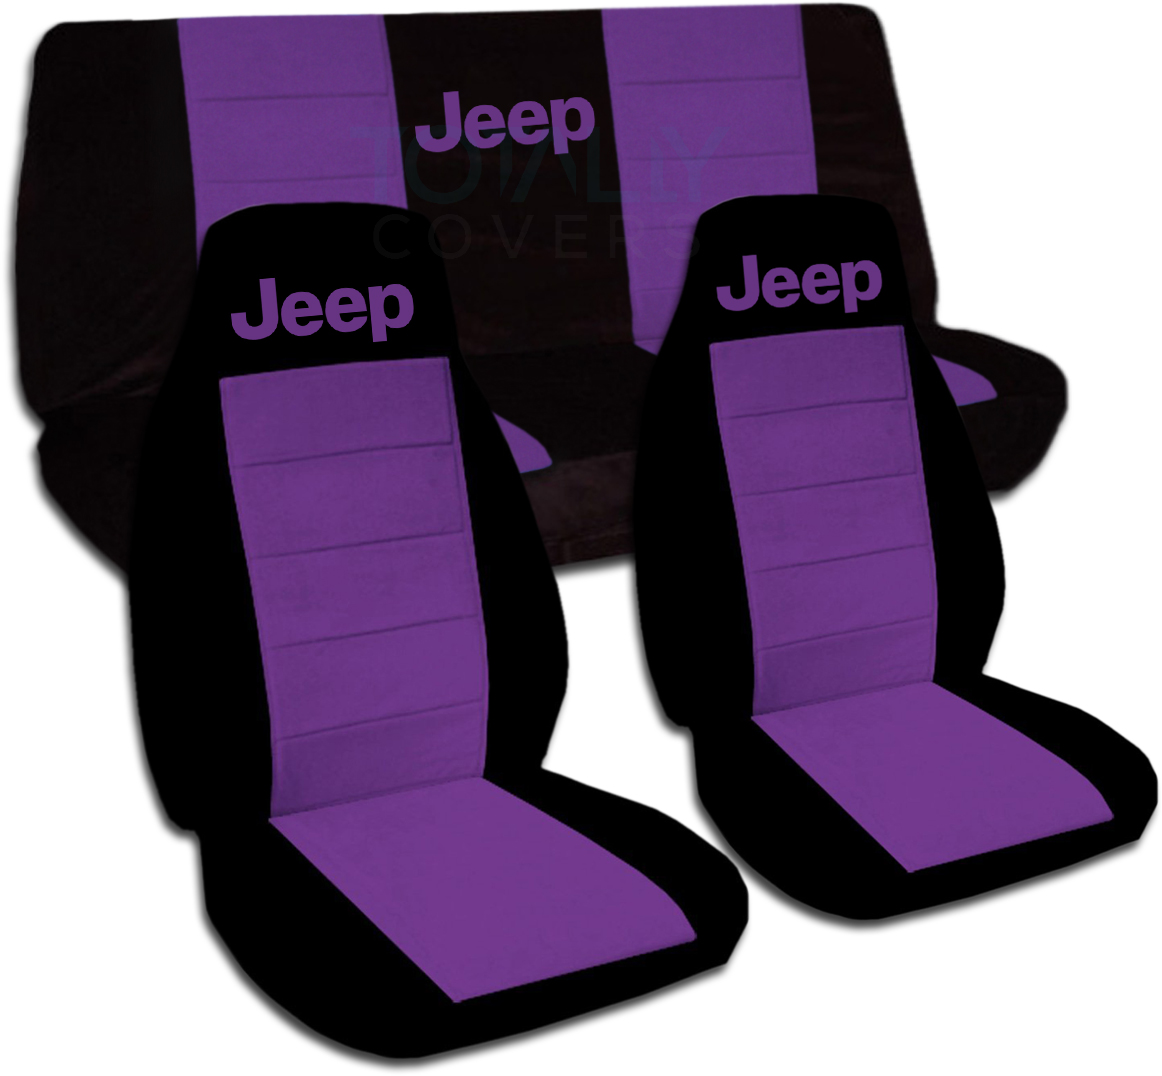 Jeep Wrangler YJ TJ JK 1987 2017 Two Tone Seat Covers W